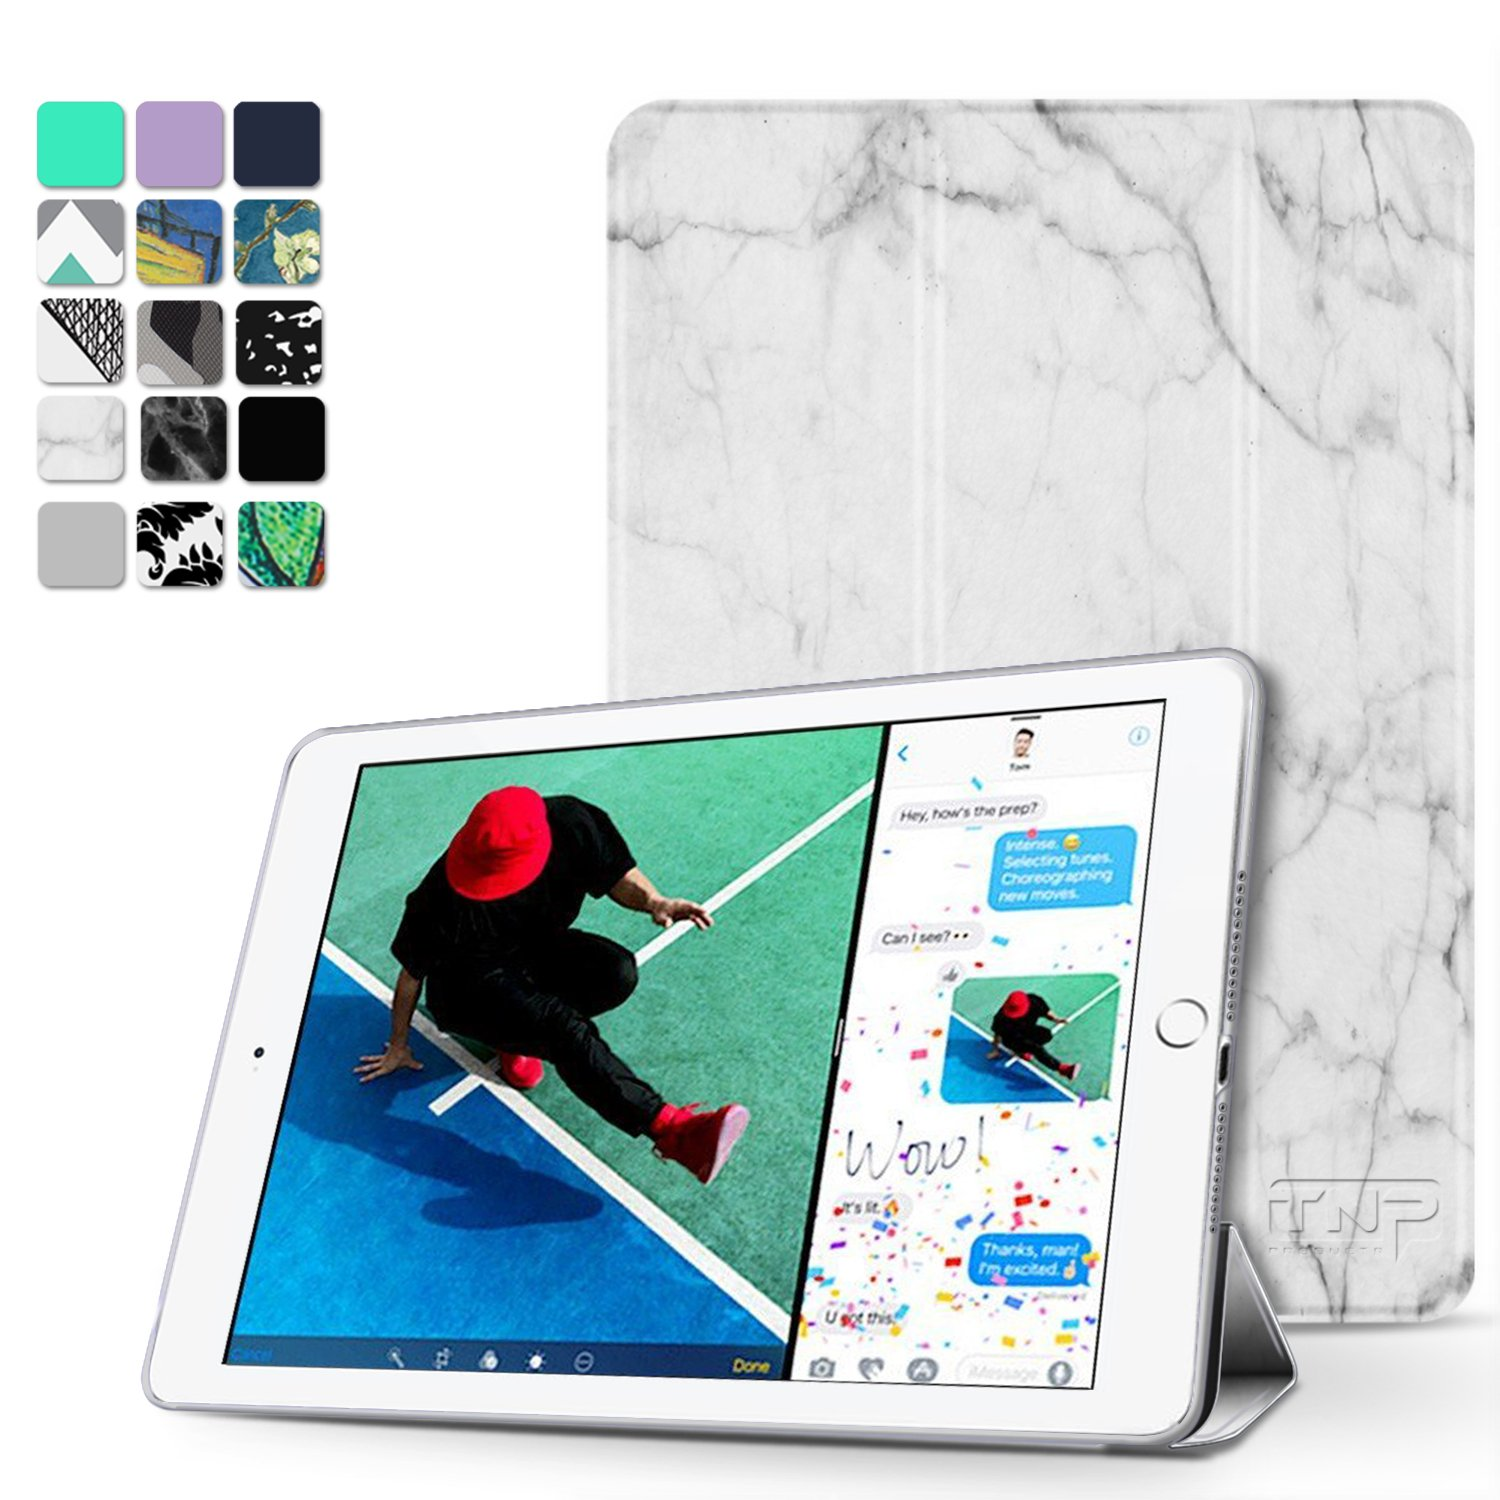 TNP New iPad 2018 2017 iPad 9.7 inch Case - Lightweight Smart Case Trifold Slim Shell Stand Cover with Auto Sleep Wake Function Feature for Apple iPad 9.7' 2018 2017 Release Tablet (Marble Rose) TNP Products IPD_17_FLD_MRB_RSG